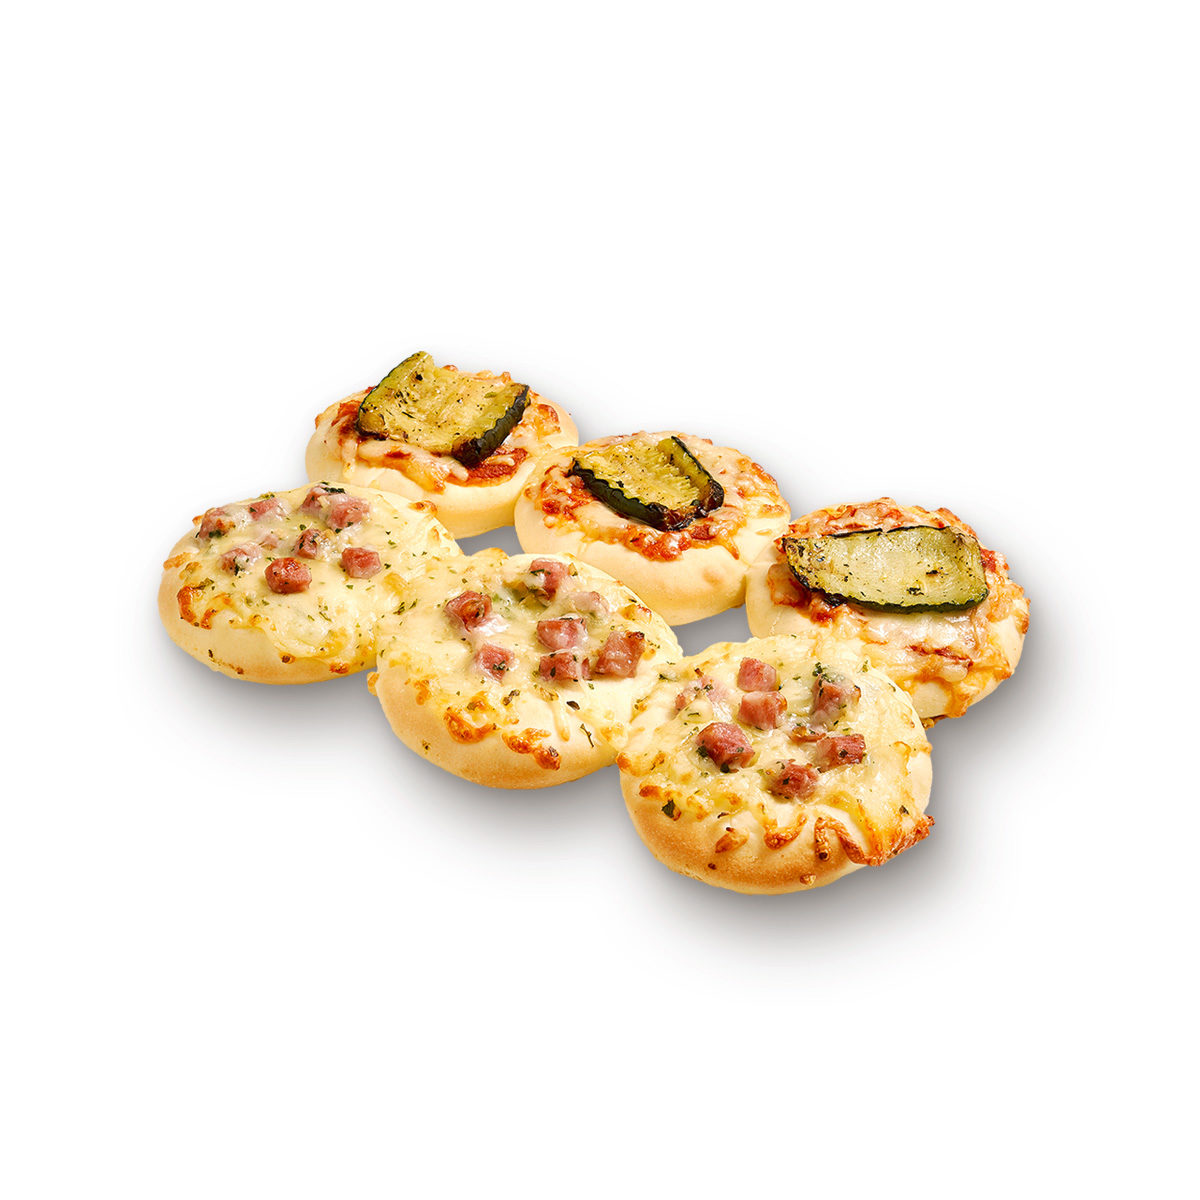 Cheese, ham and cheese, grilled courgette duo pizza